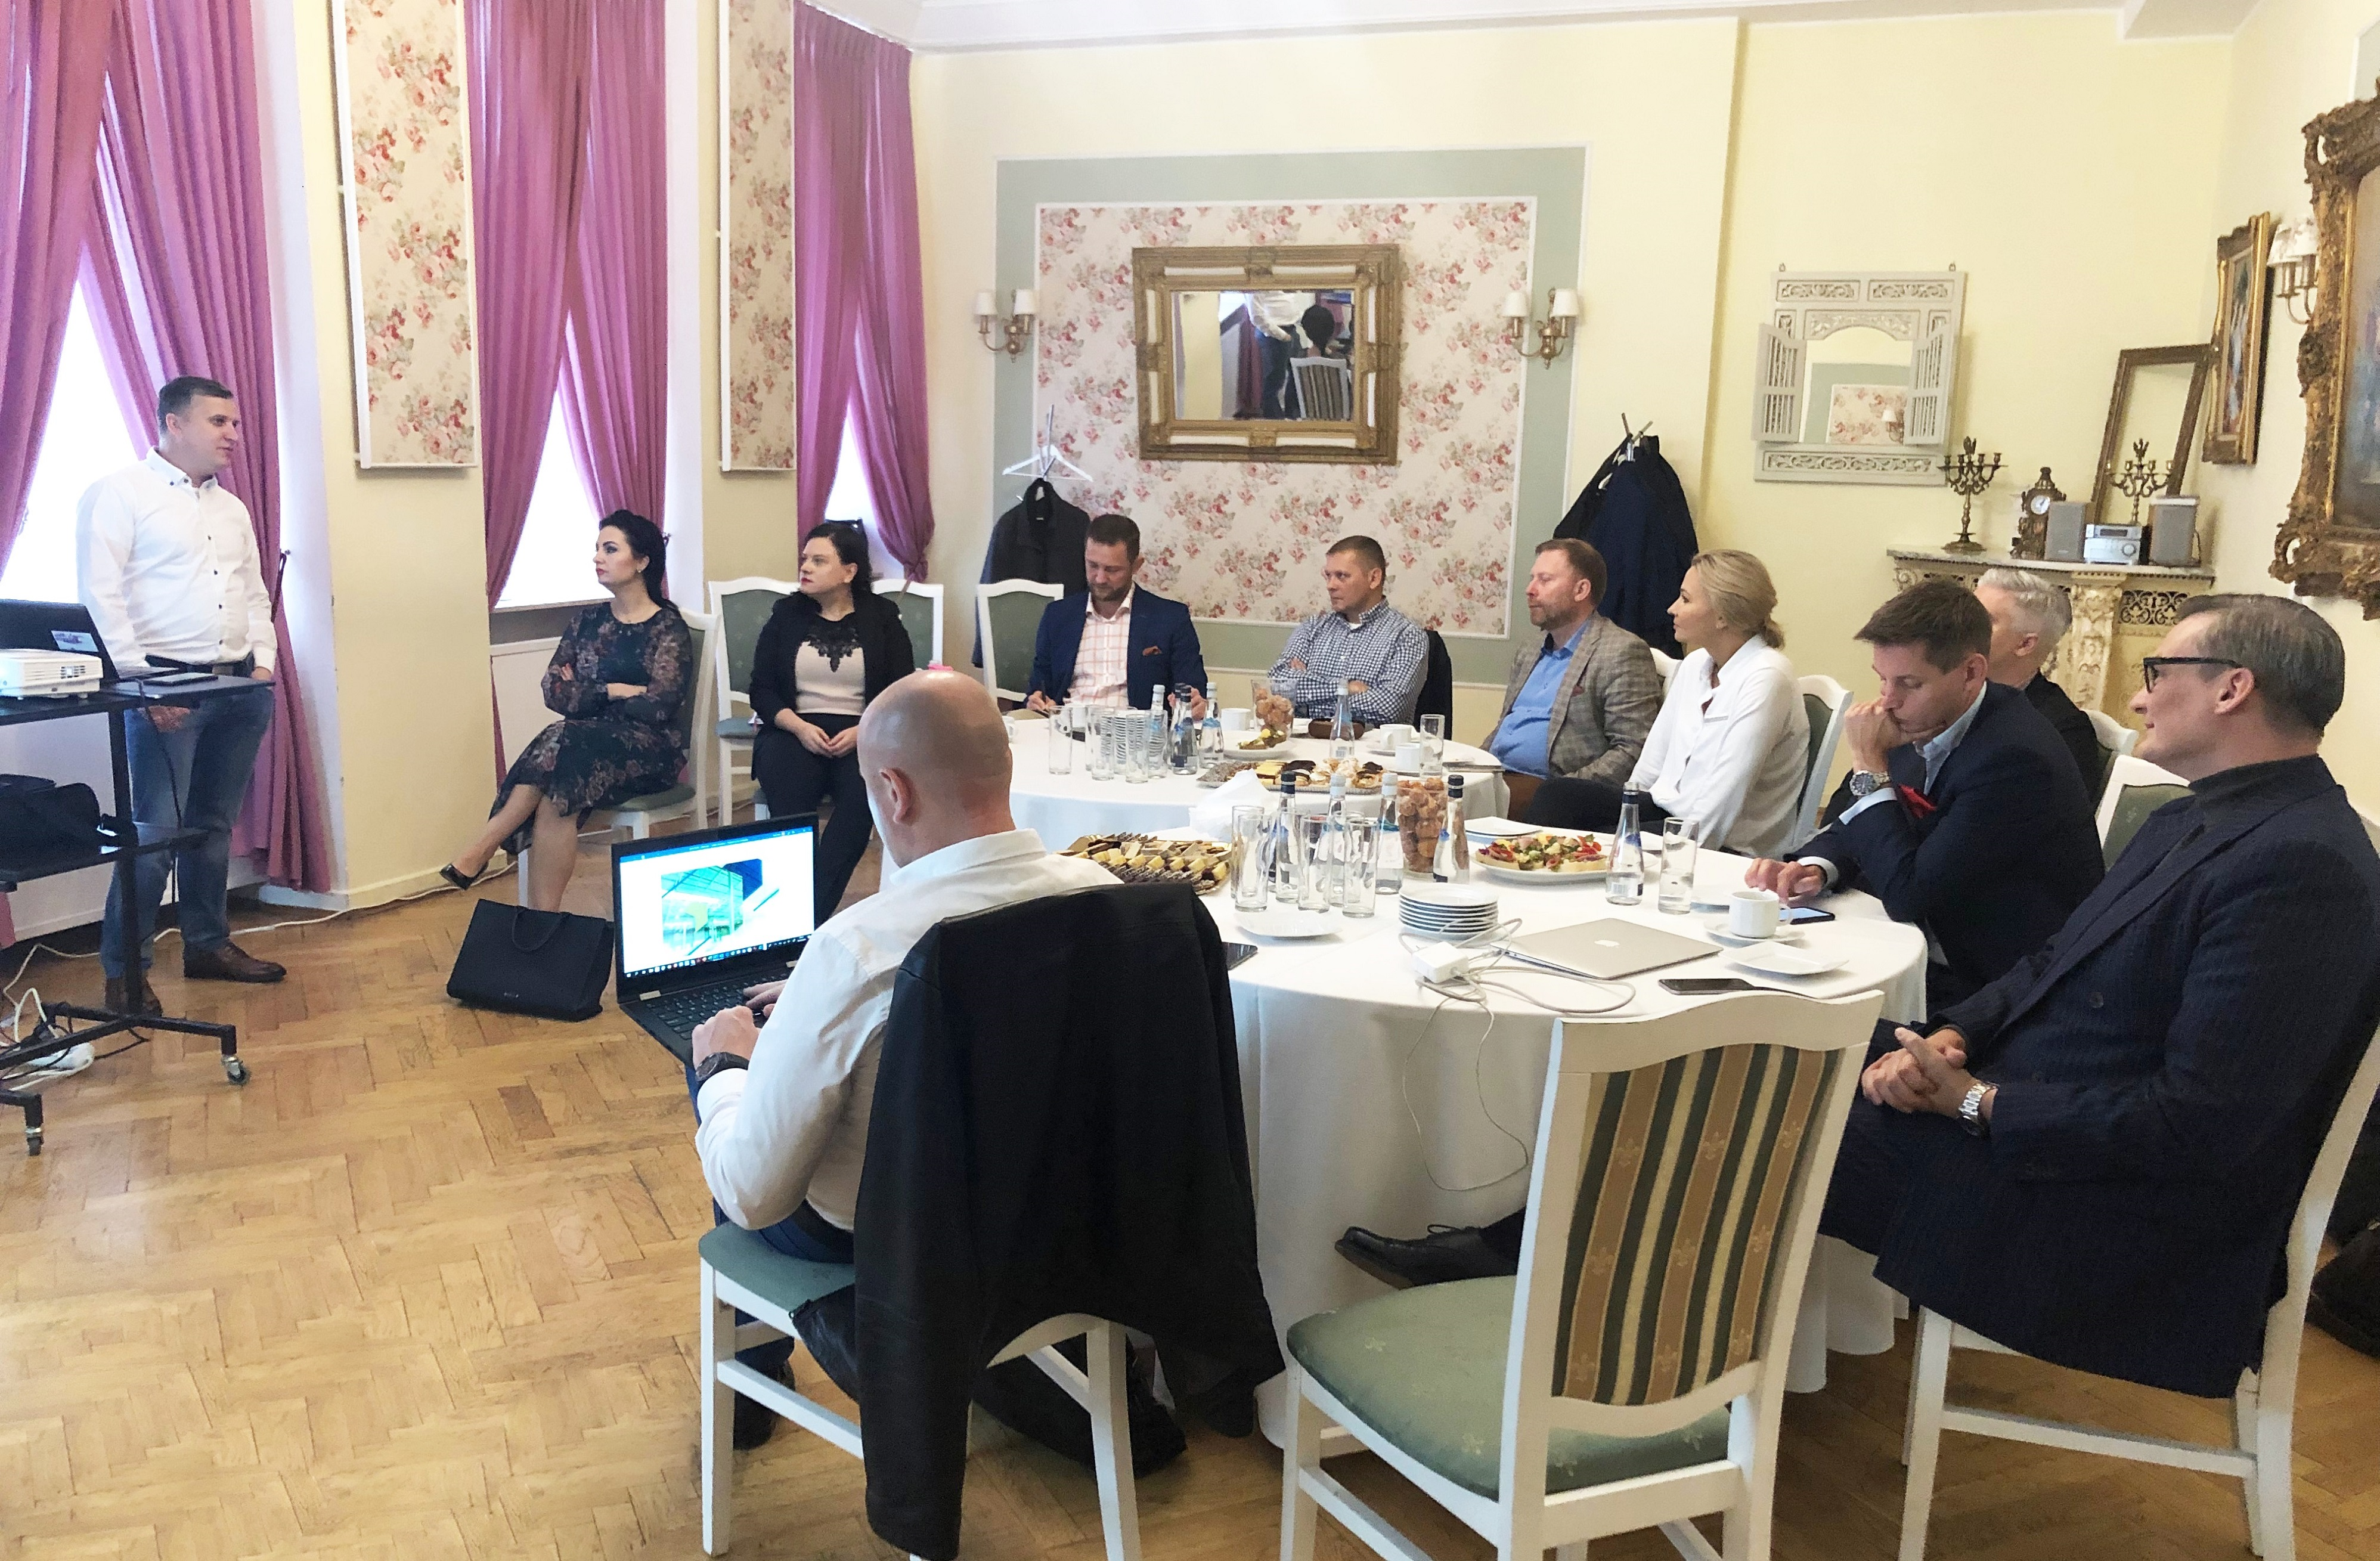 Meeting of PSME Experts in the form of workshops